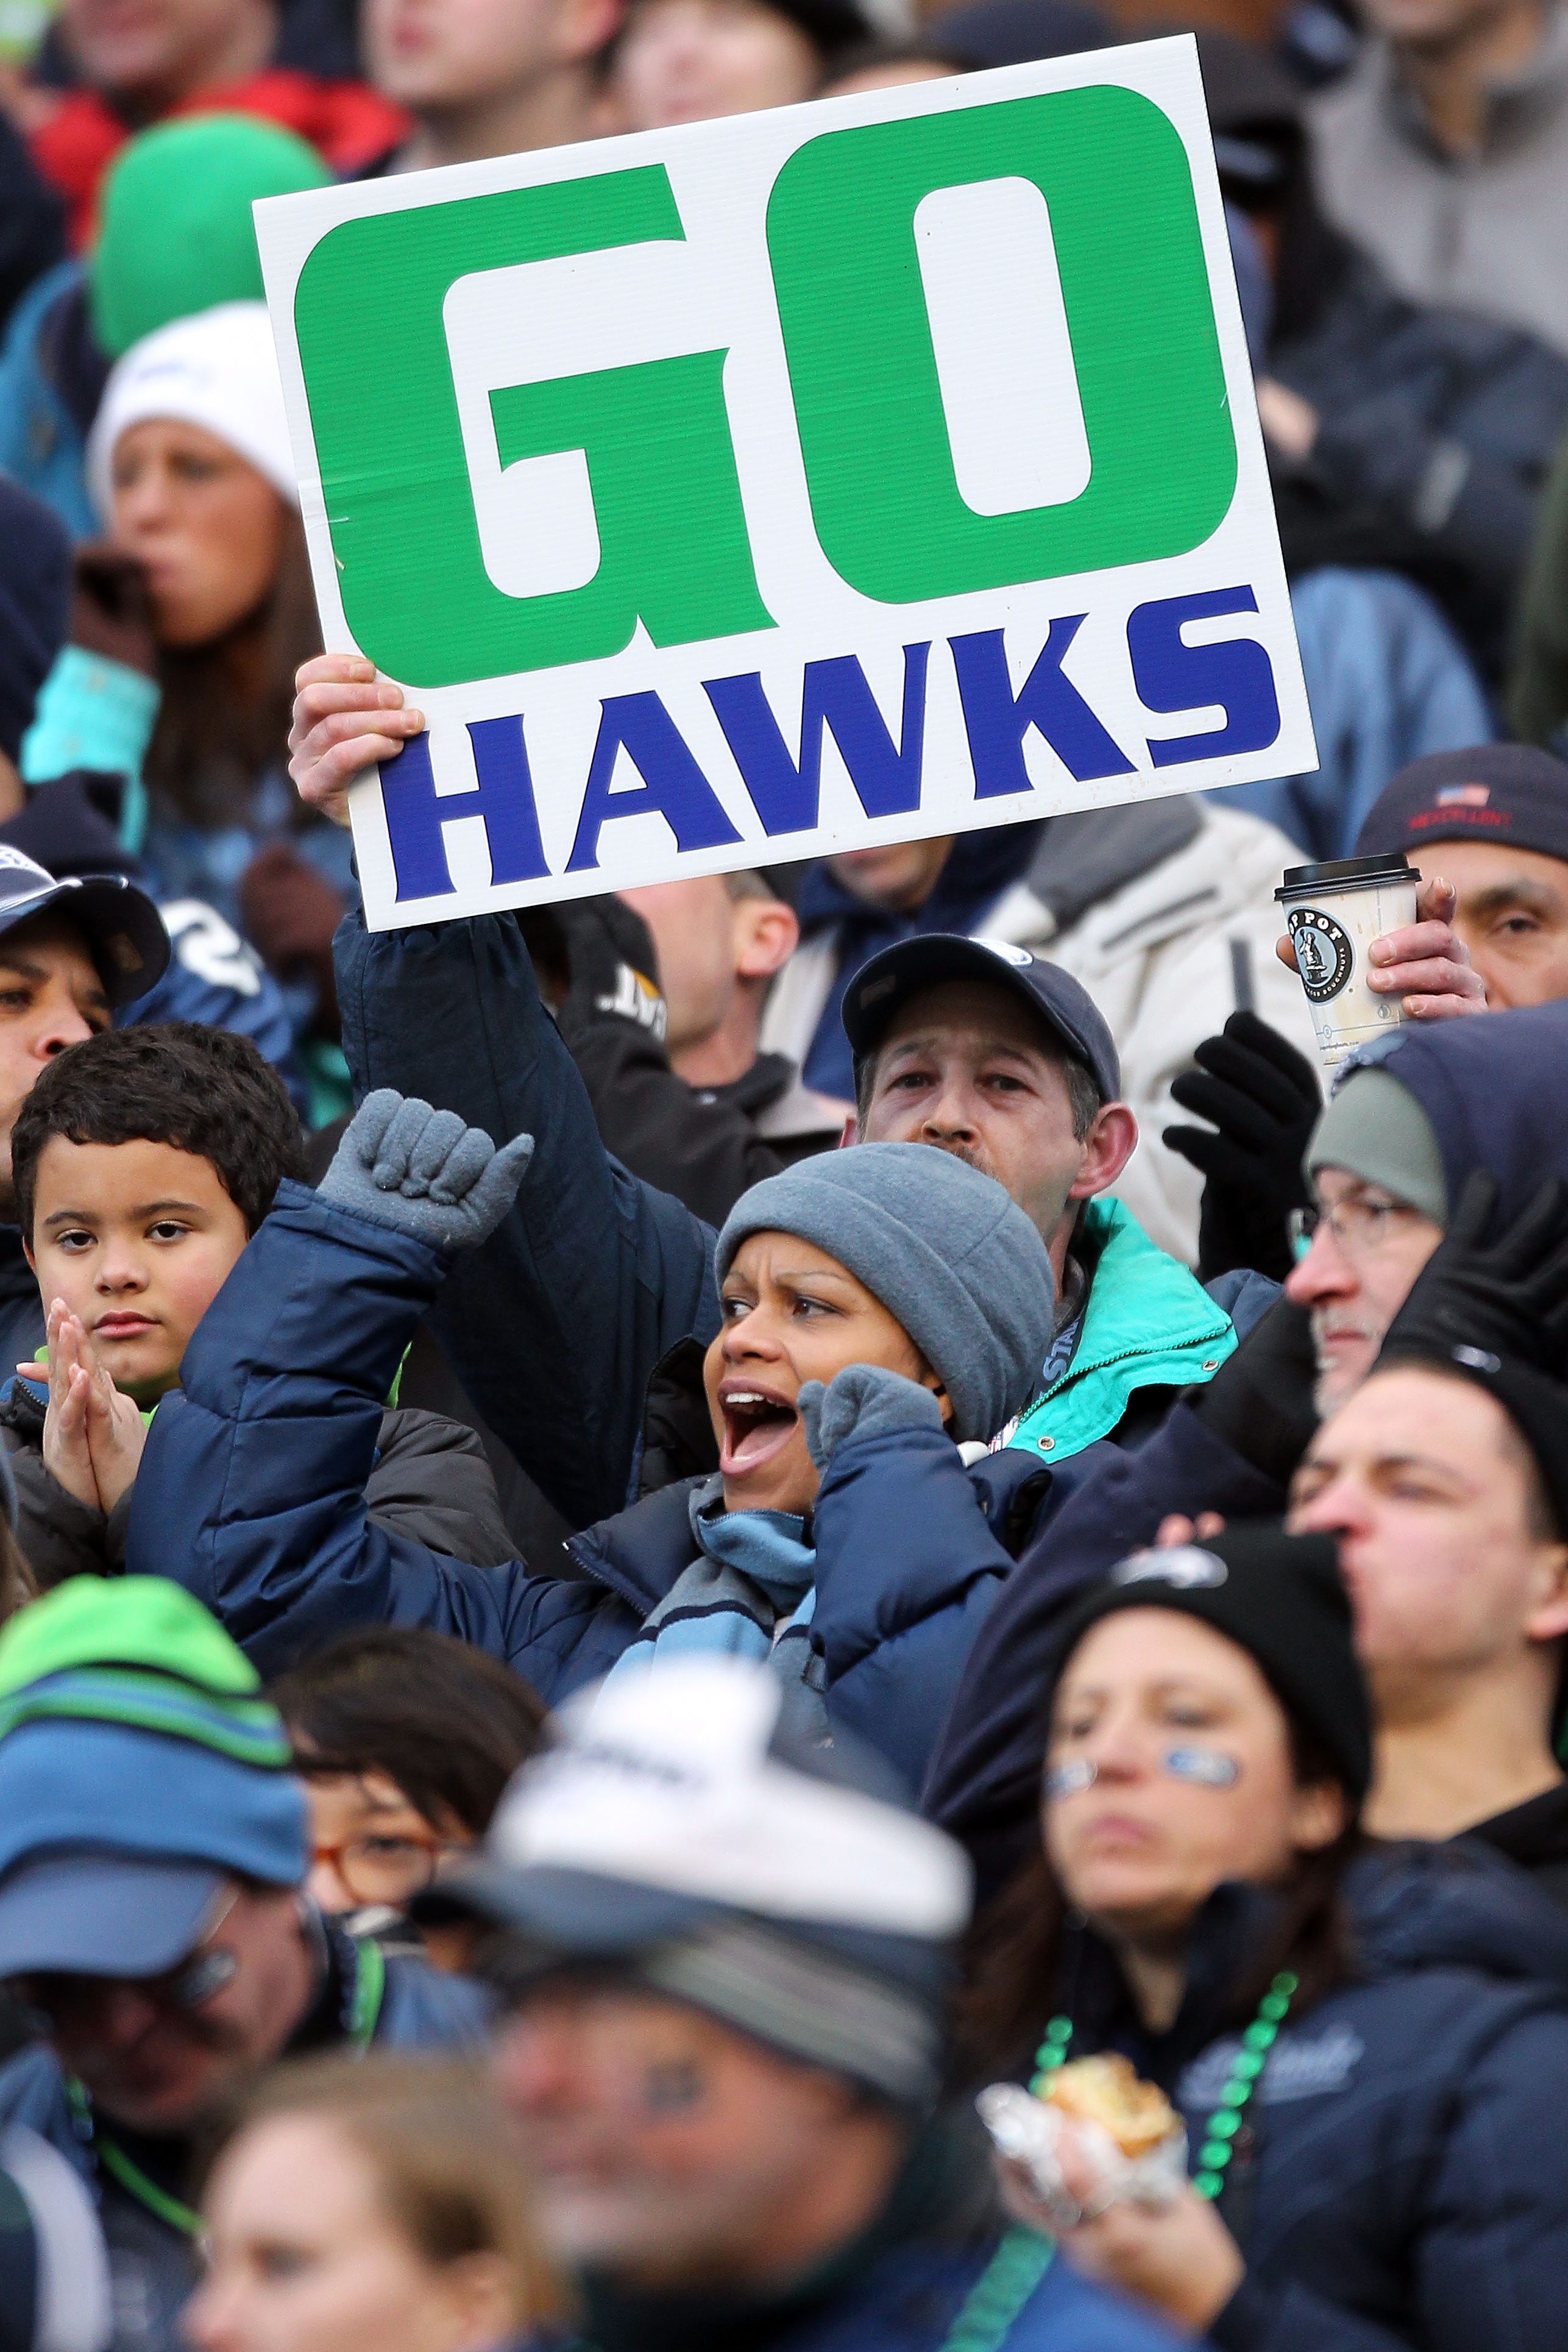 SEATTLE, WA - JANUARY 08:  Fans of the Seattle Seahawks cheer in the second half as the Seahawks take on the New Orleans Saints during the 2011 NFC wild-card playoff game at Qwest Field on January 8, 2011 in Seattle, Washington.  (Photo by Otto Greule Jr/